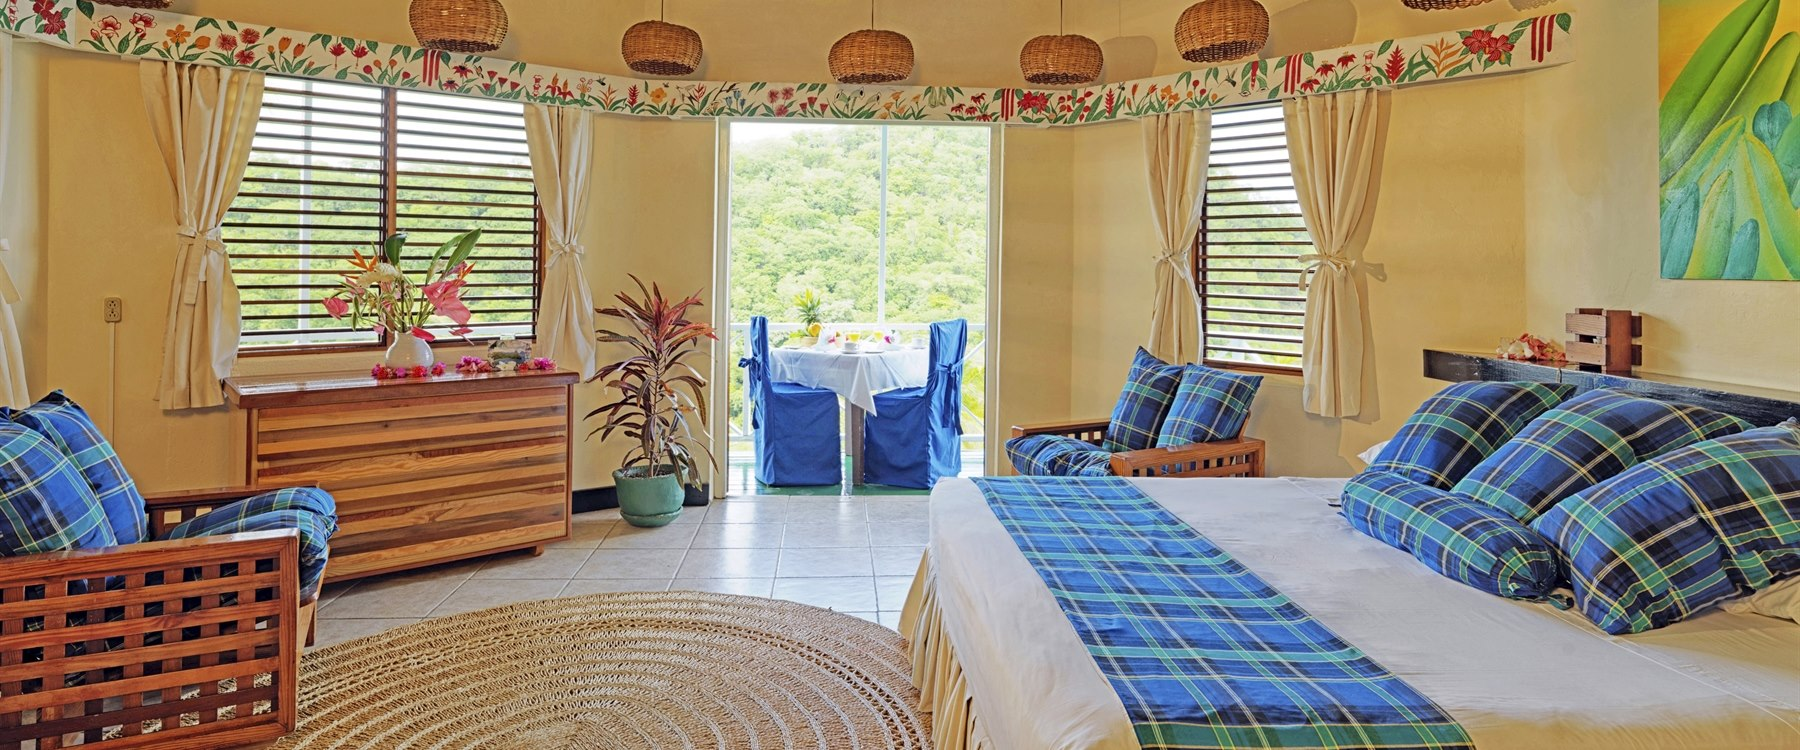 Superior Bedroom at Anse Chastanet, St Lucia